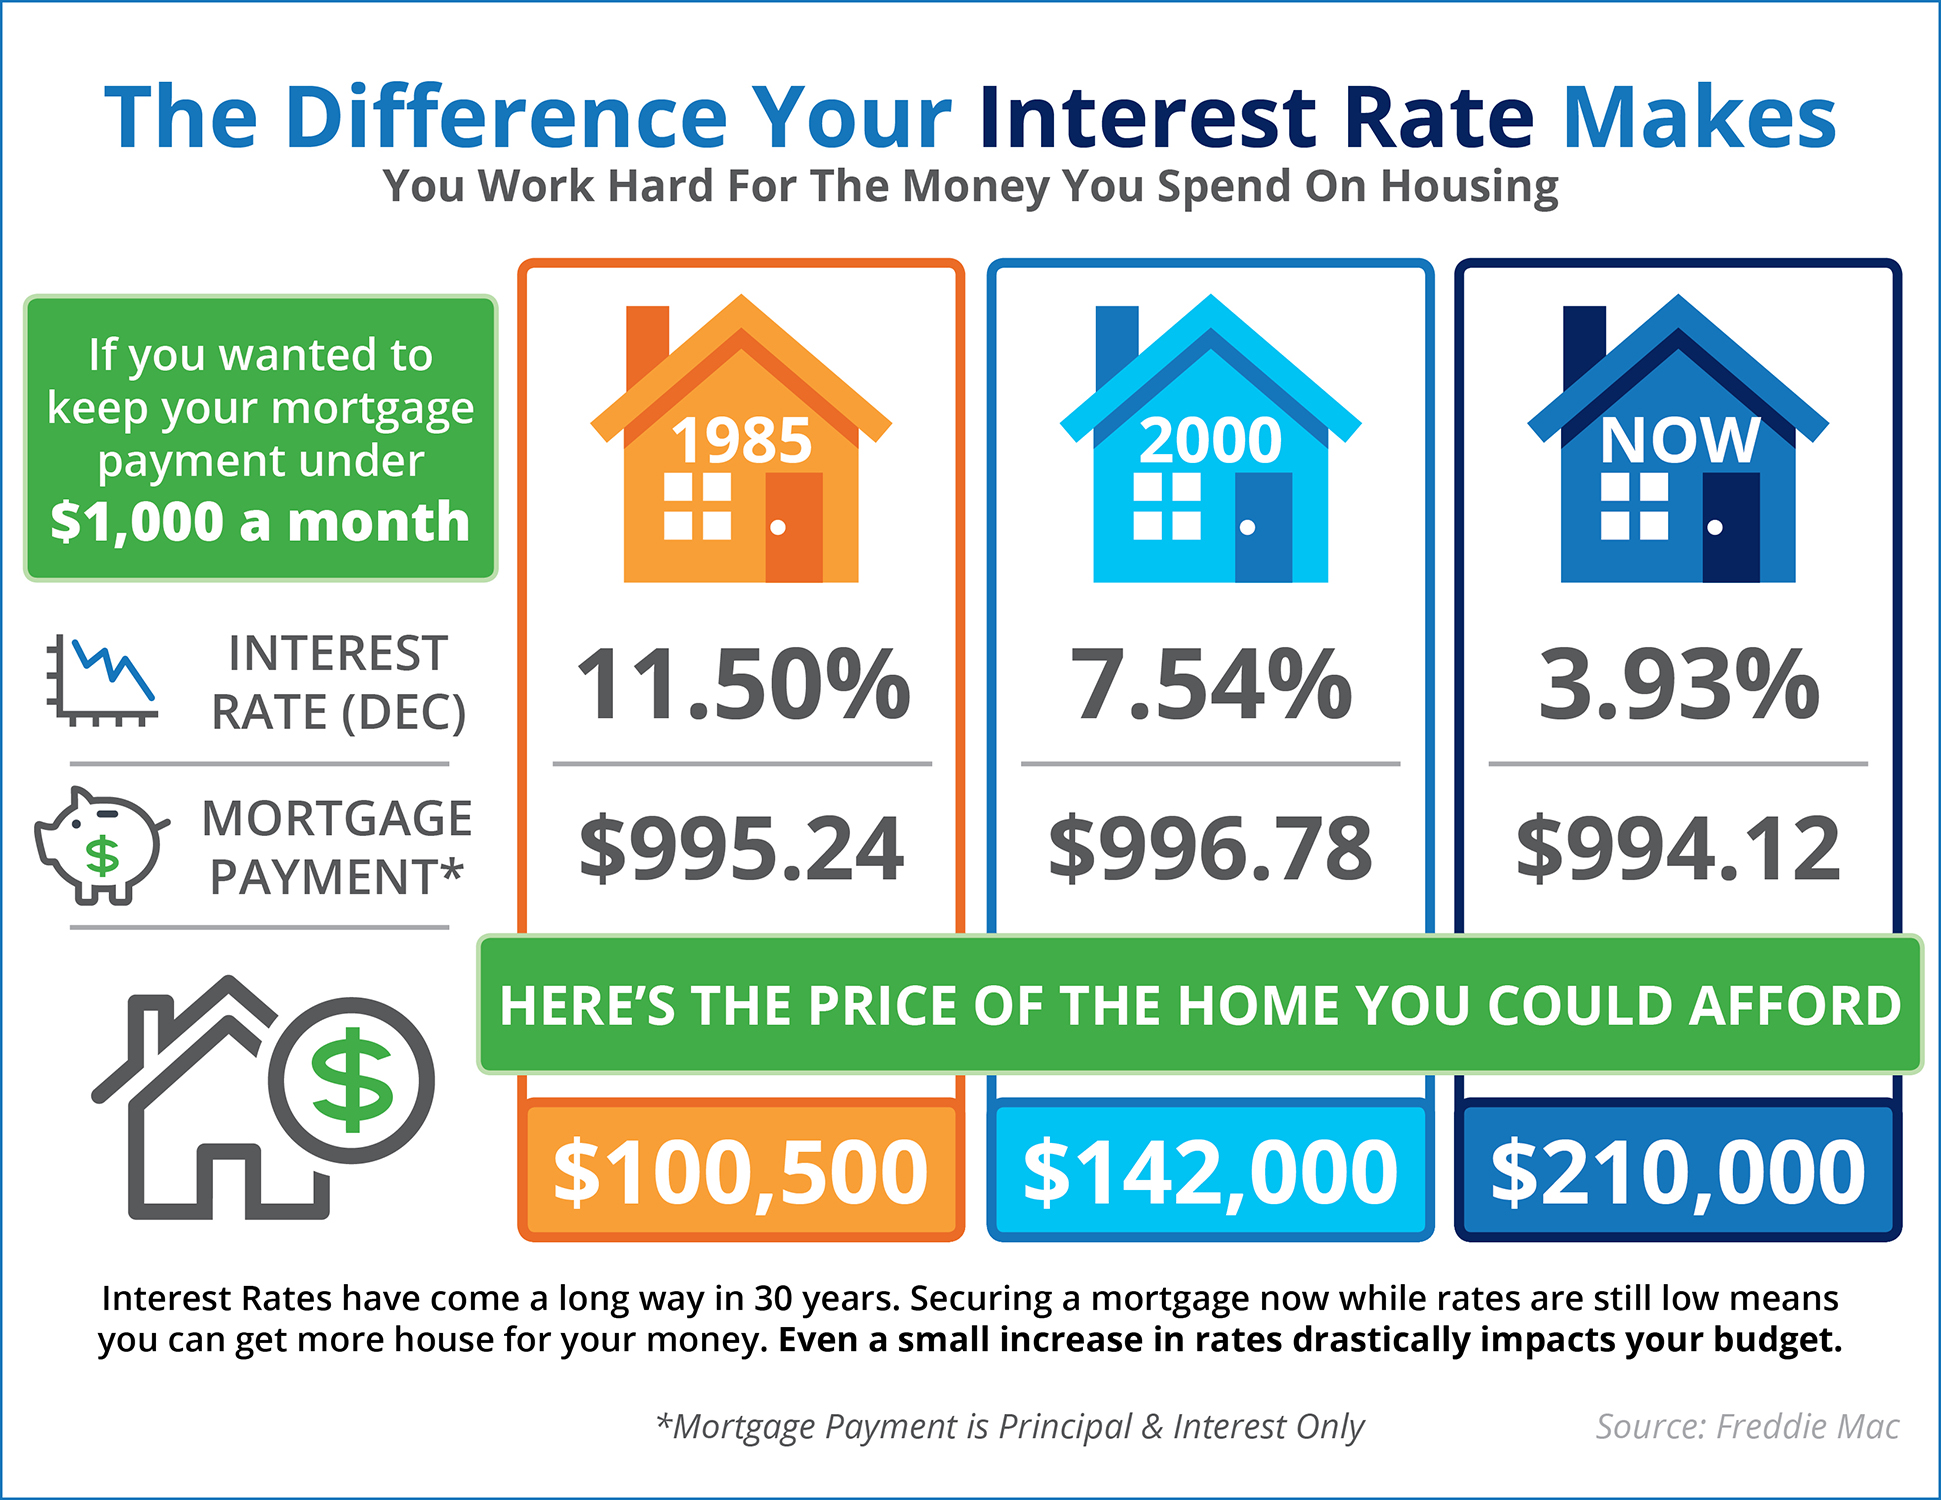 Do You Know The Difference Your Interest Rate Makes? [INFOGRAPHIC] | Simplifying The Market